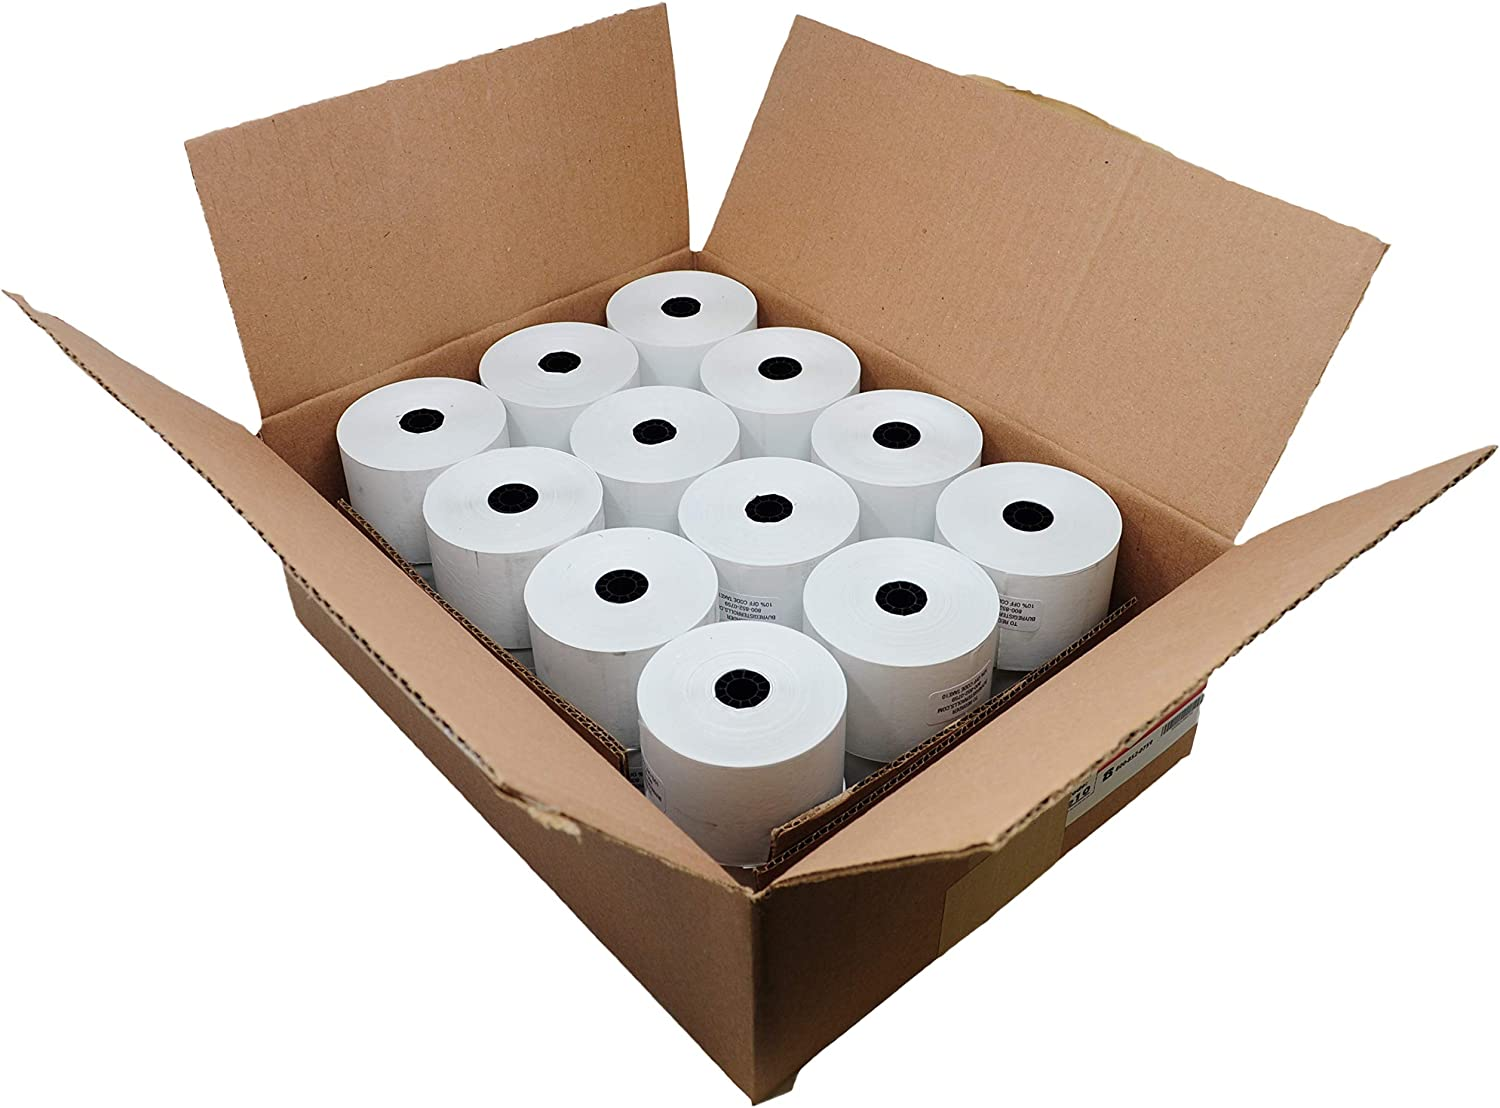 24 Rolls 2 5//16 x 356 Thermal Paper for Gas Station from BuyRegisterRolls